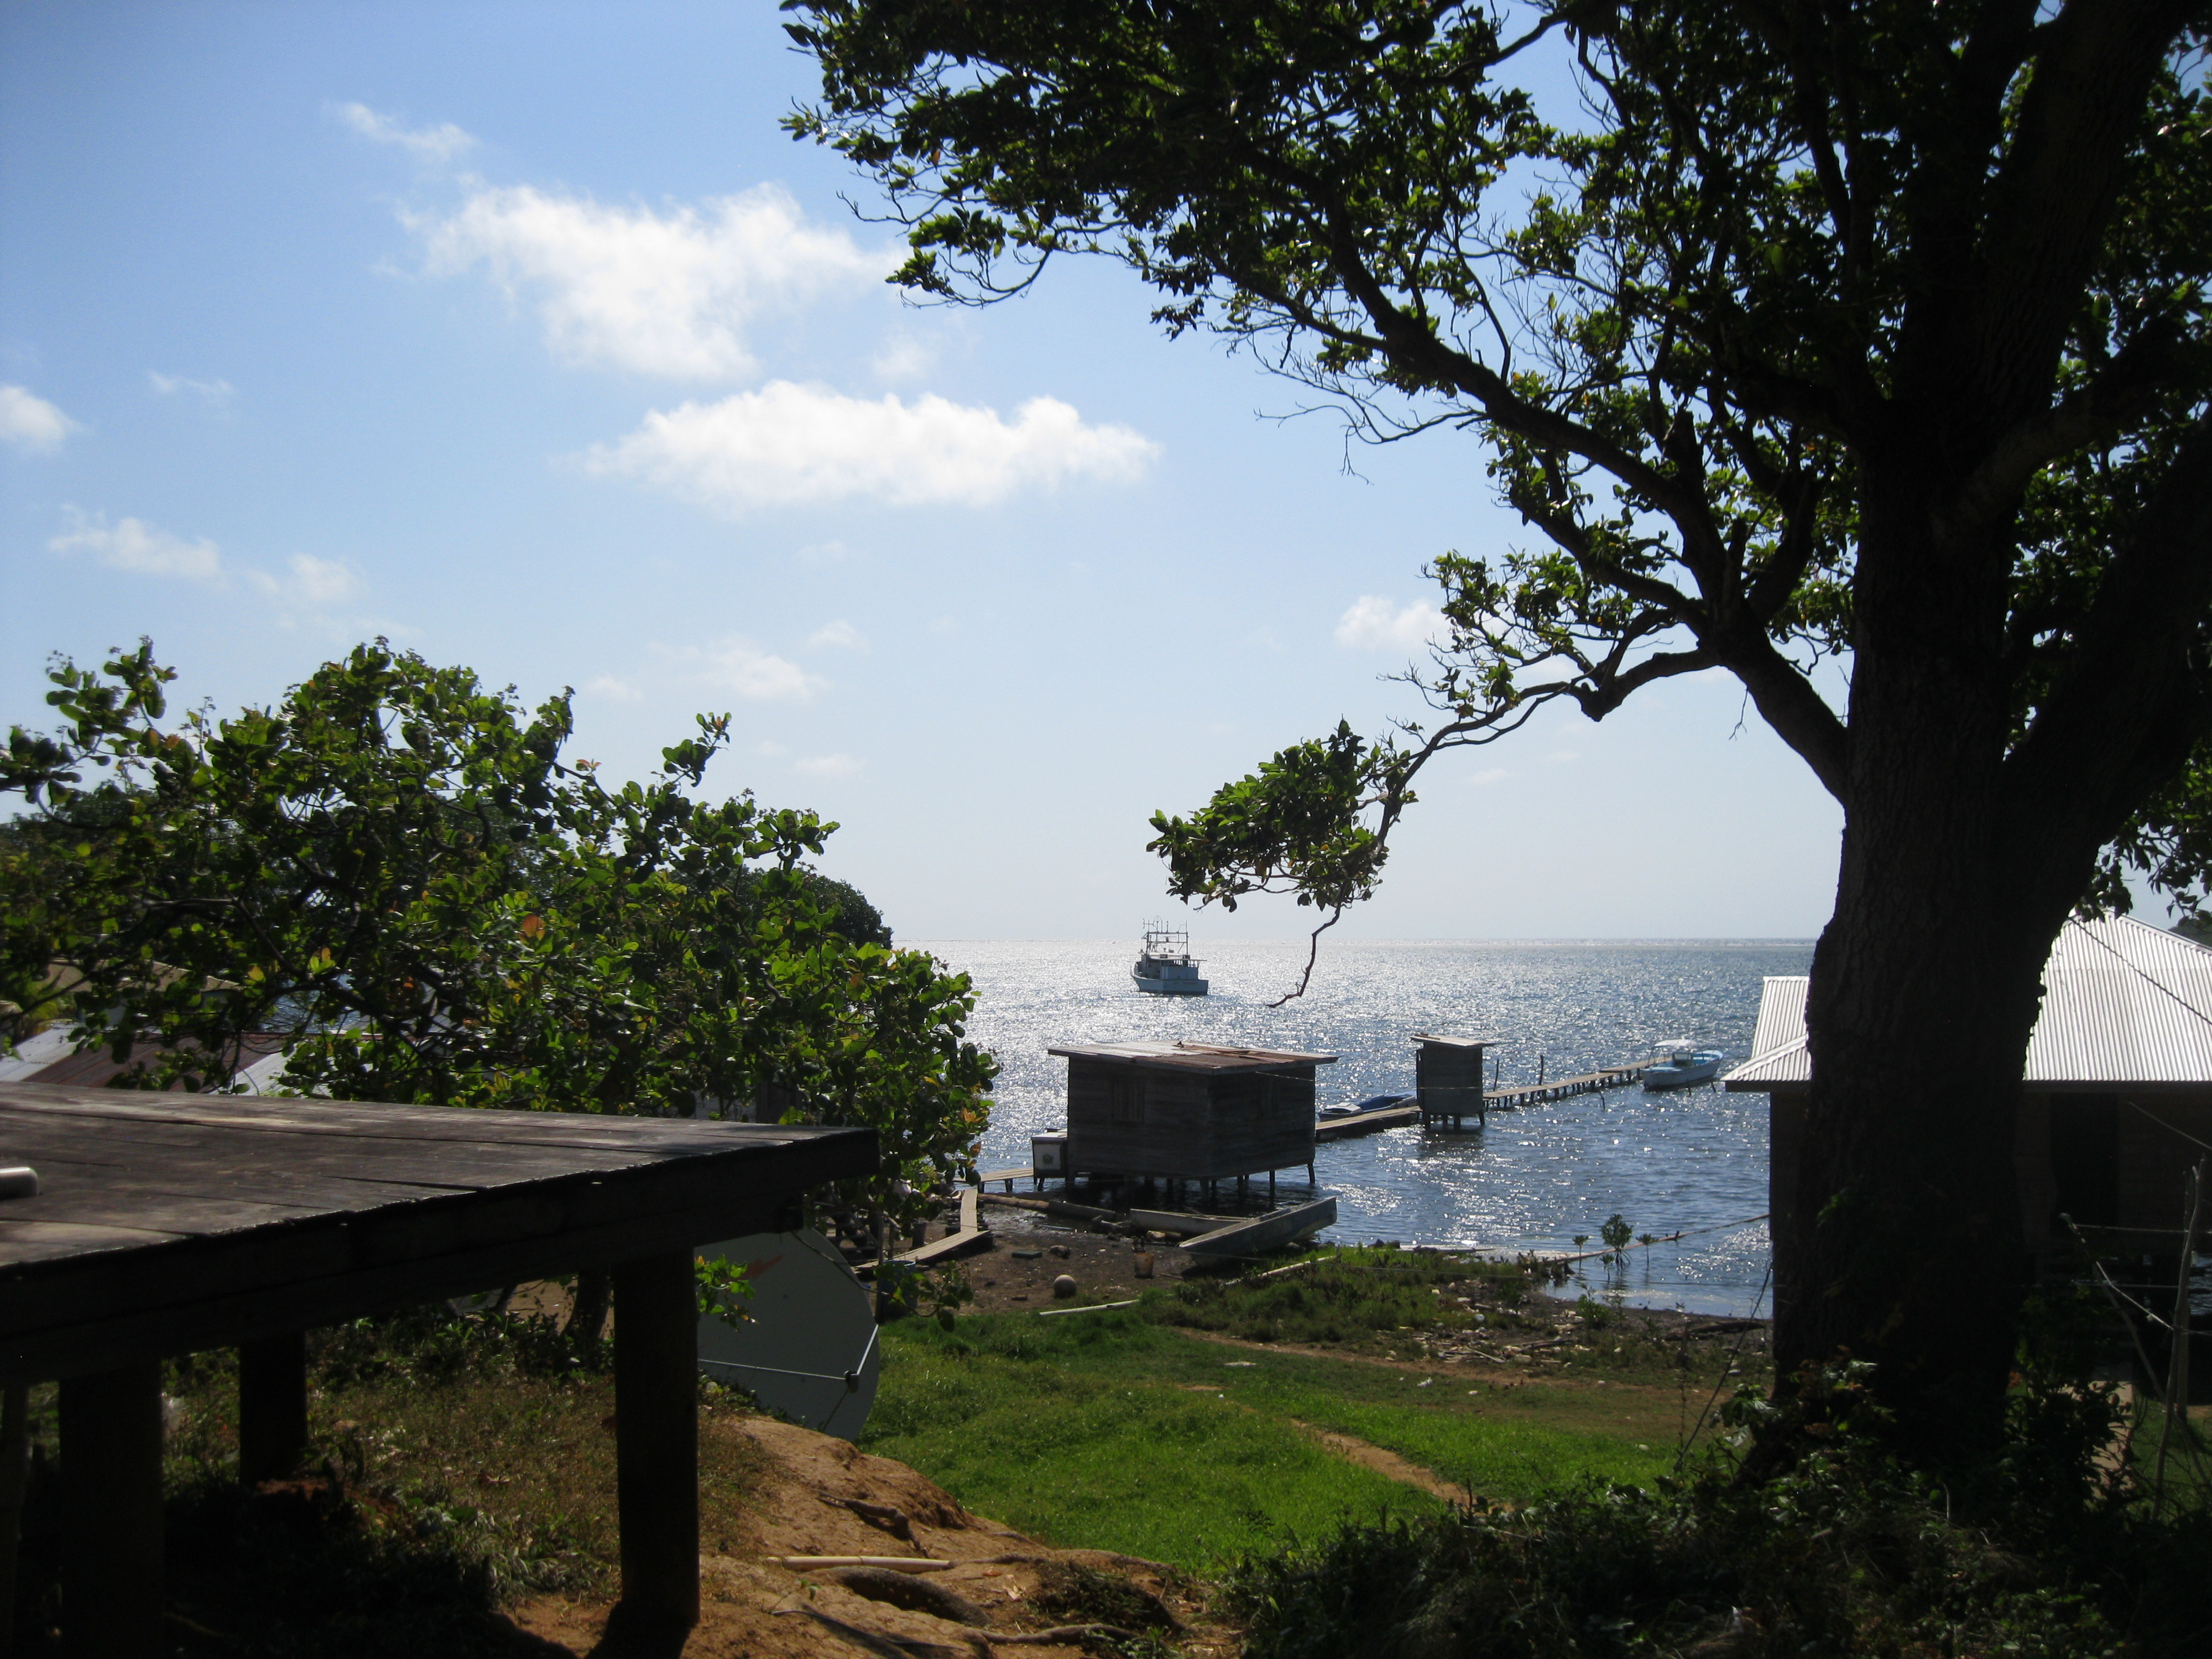 view of secondary dock